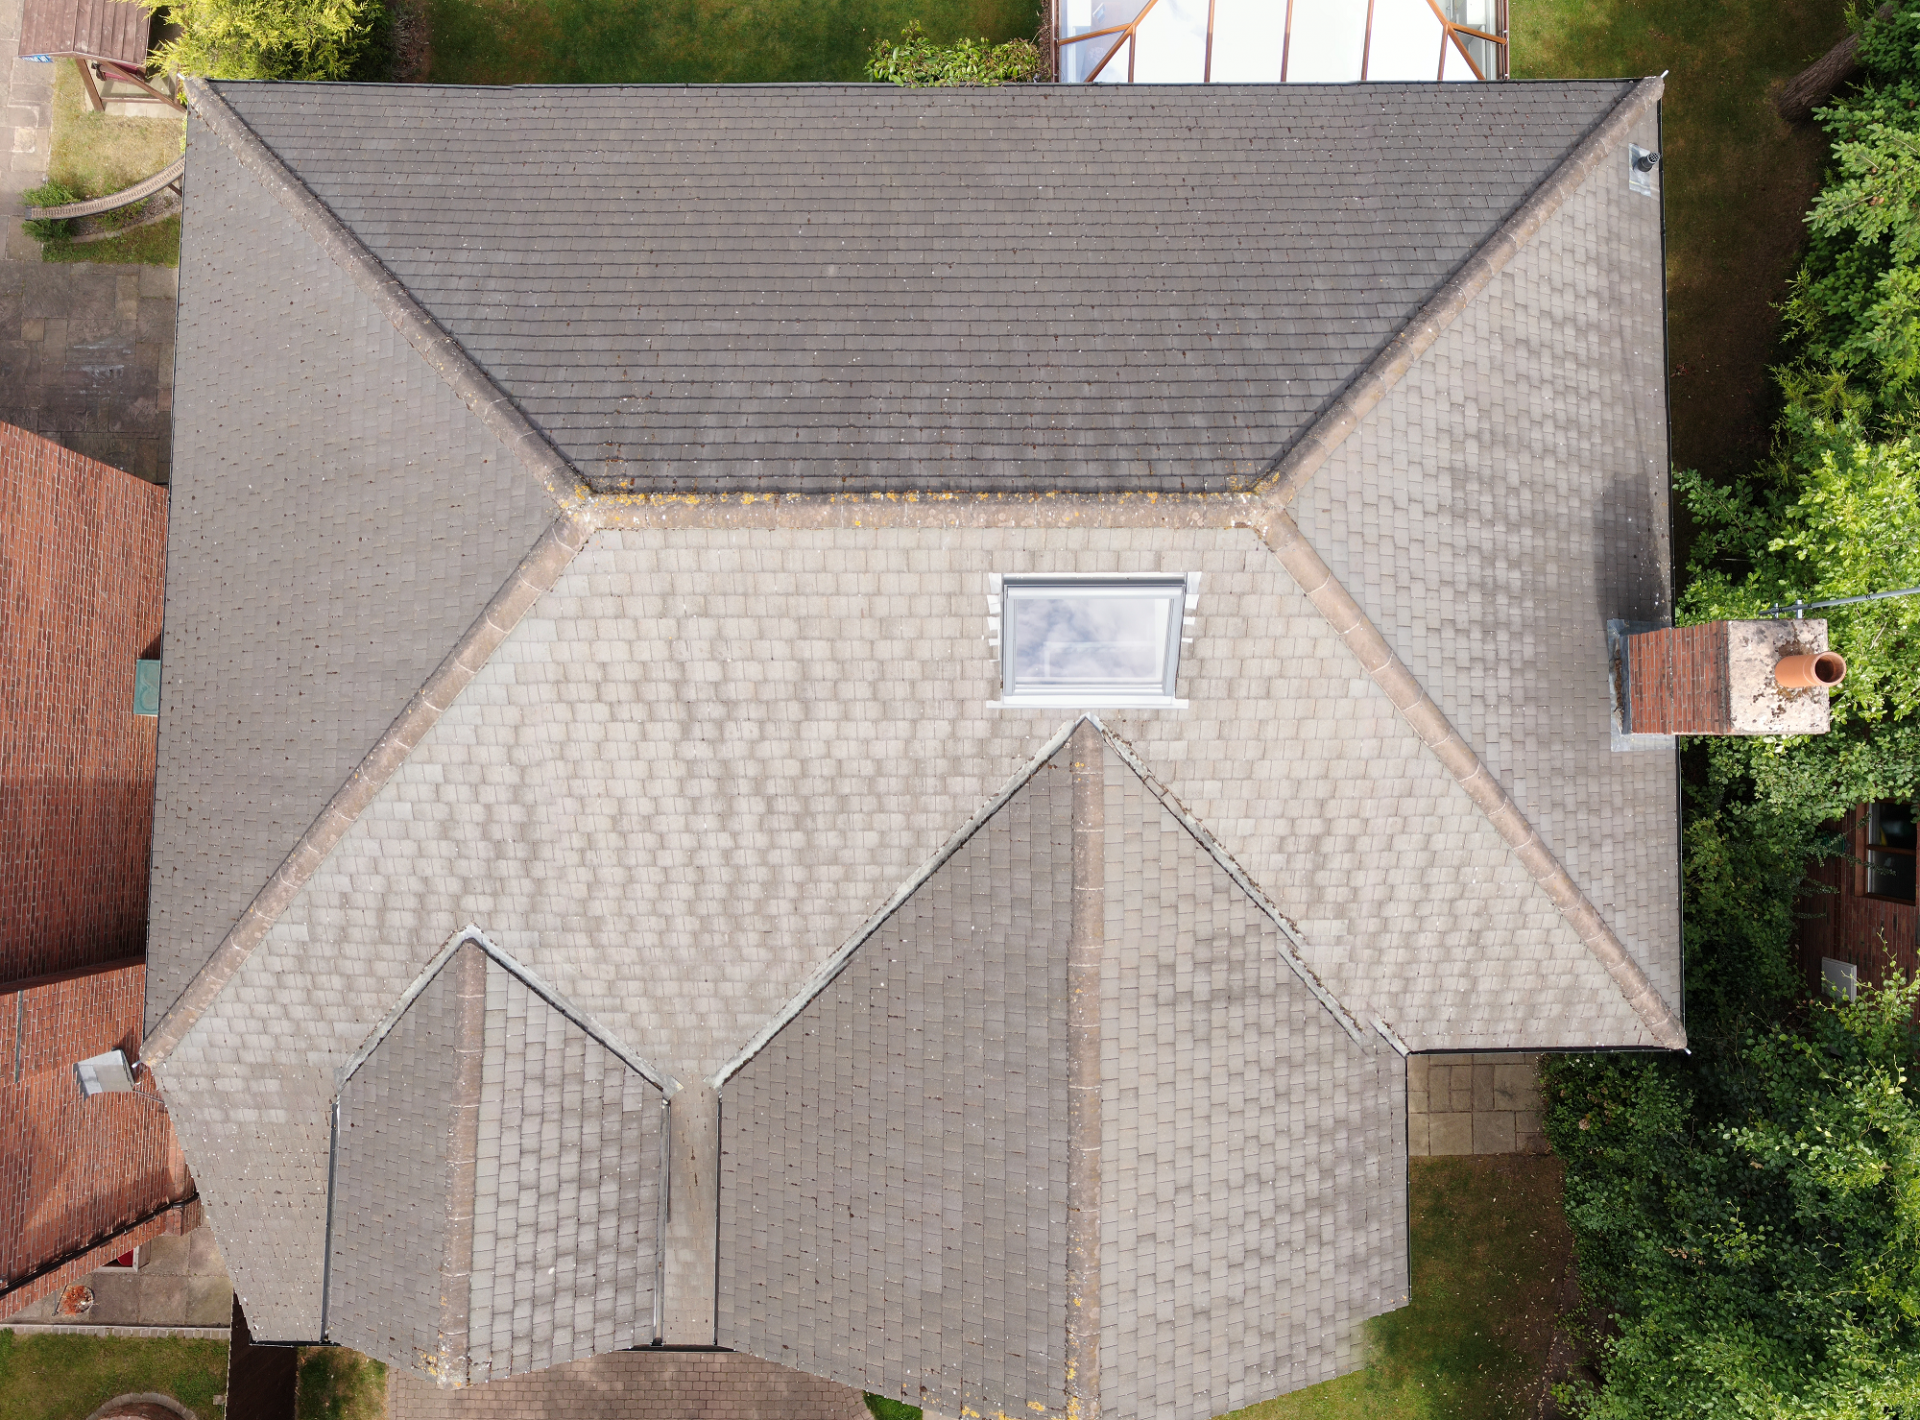 Roof Survey Overview